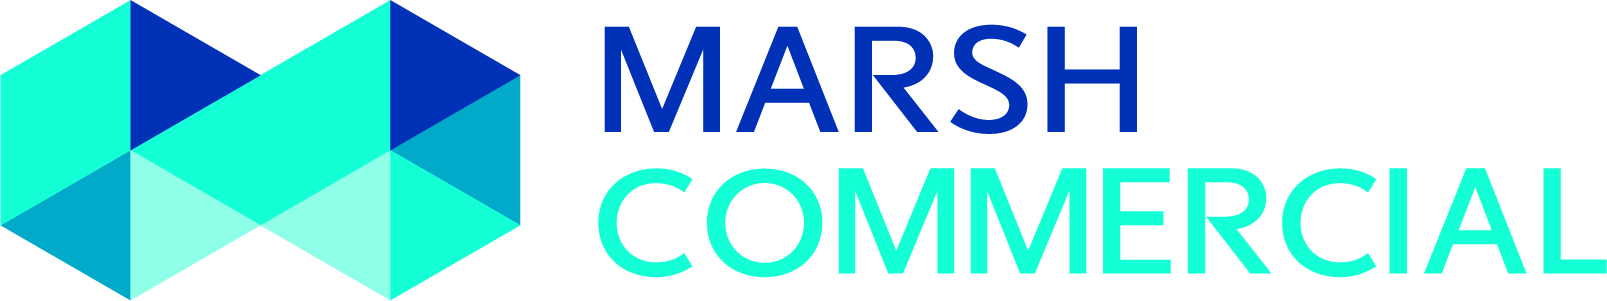 Marsh Commercial Logo CMYK